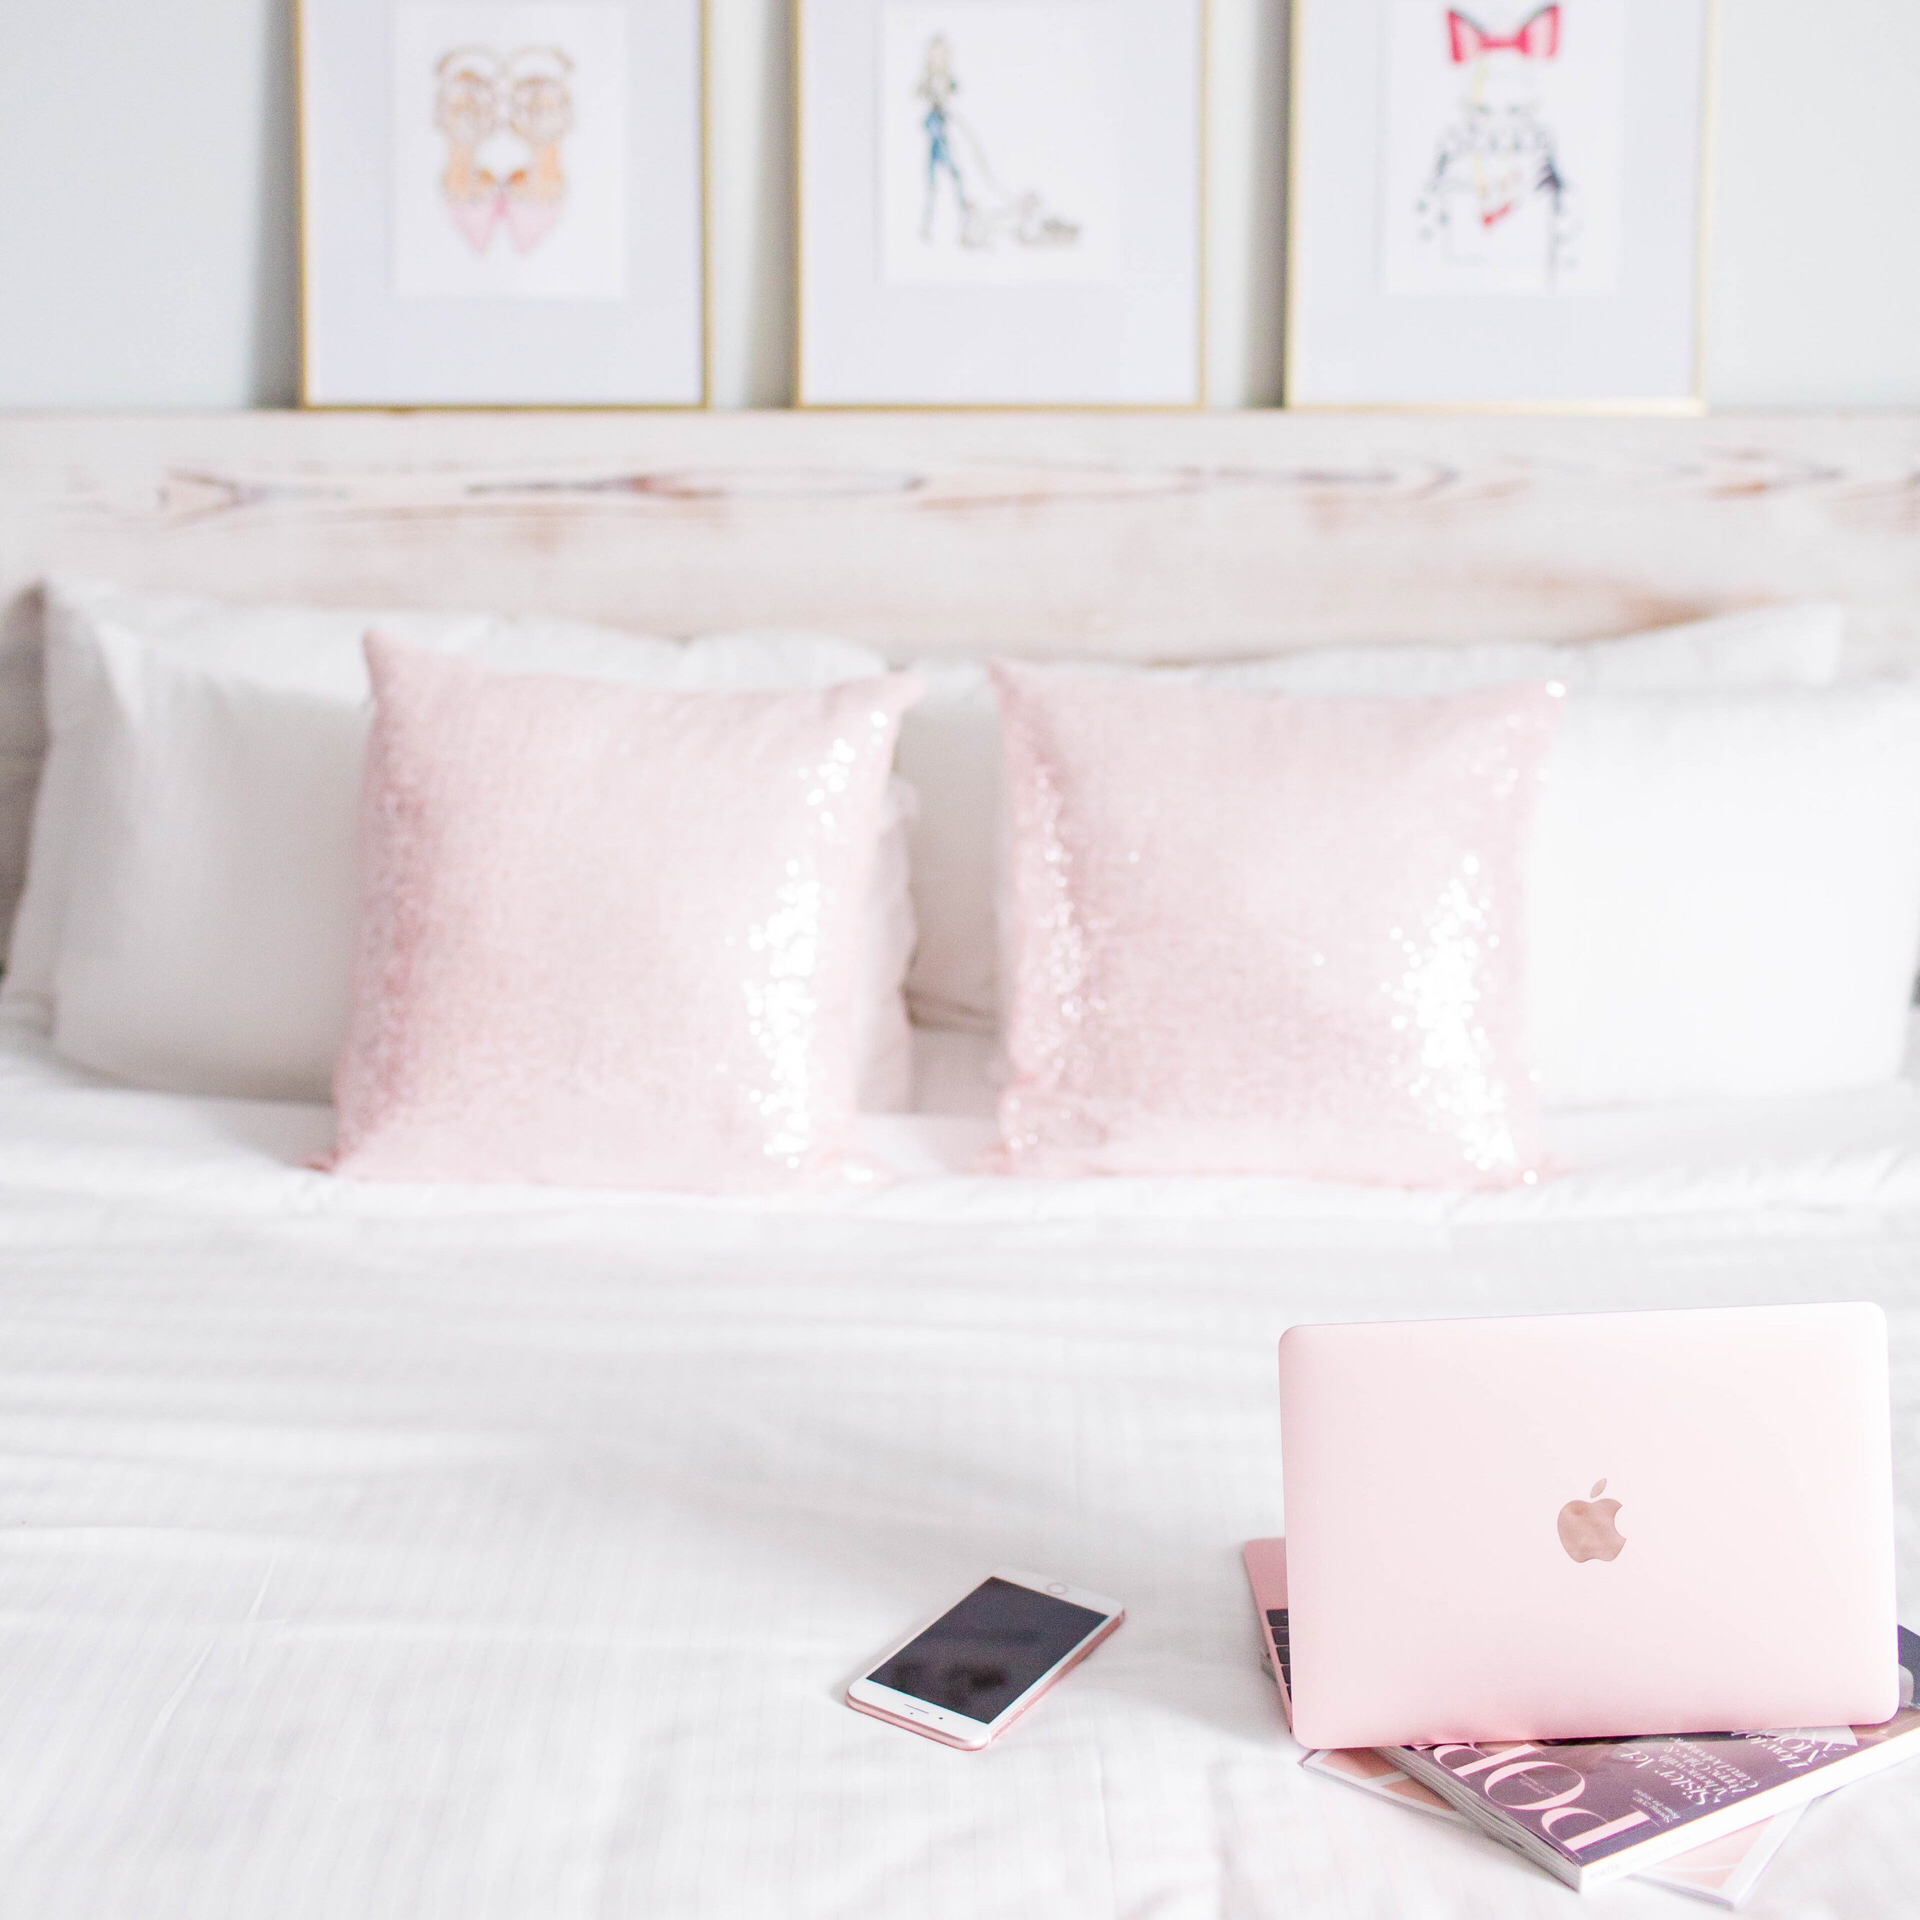 Yes, those are my pillows!No, I can't travel anywhere without SOME styling items! Quirk's rooms are picturesque on their own but you never want to be unprepared for a photo opportunity!